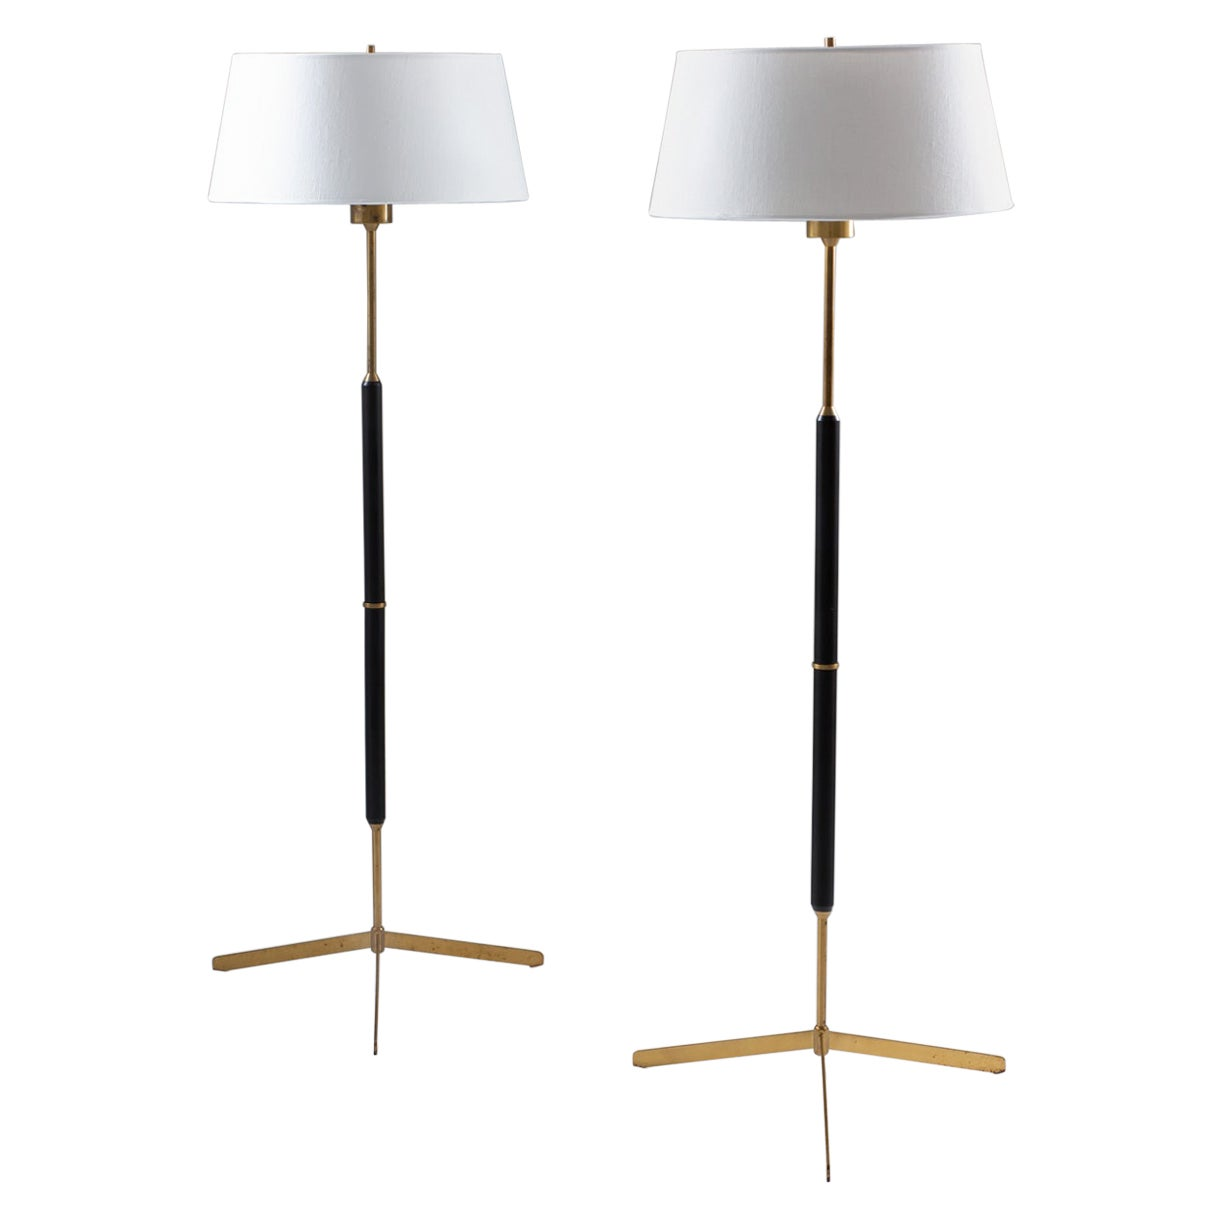 Scandinavian Midcentury Floor Lamps in Brass and Wood by Bergboms, Sweden